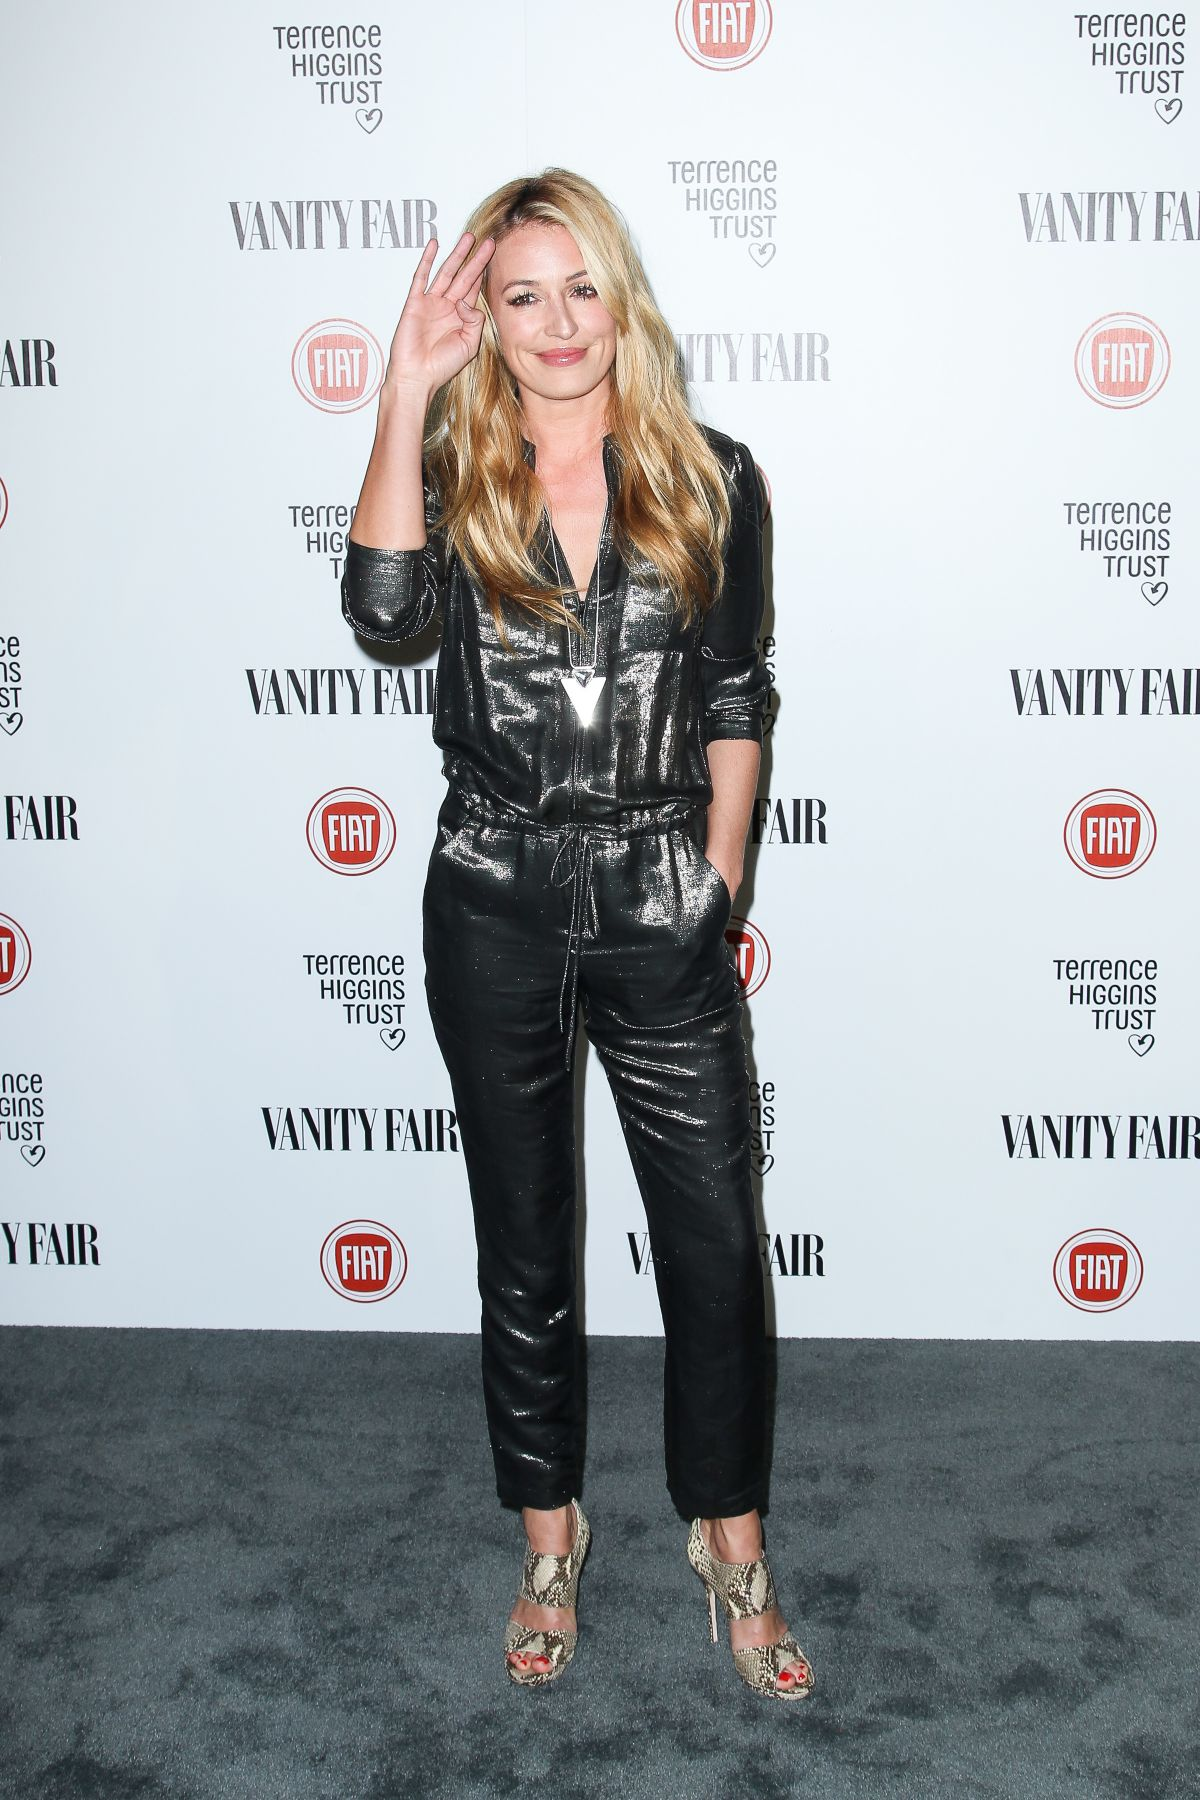 CAT DEELEY at Vanity Fair and Fiat Celebration of Young Hollywood in Los Angeles